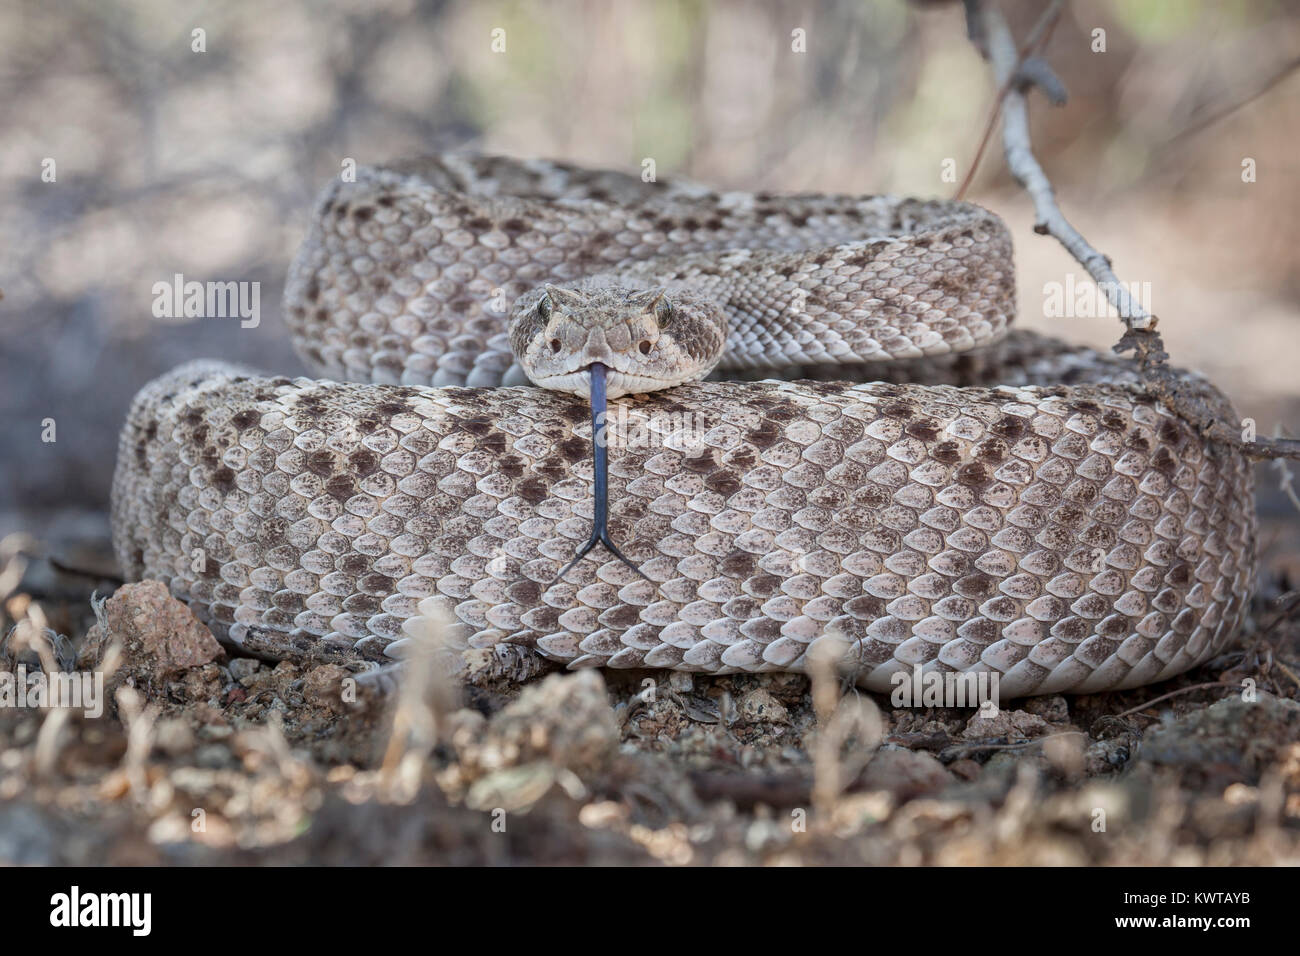 Coiled western diamondback rattlesnake (Crotalus atrox), extending its forked tongue. Stock Photo